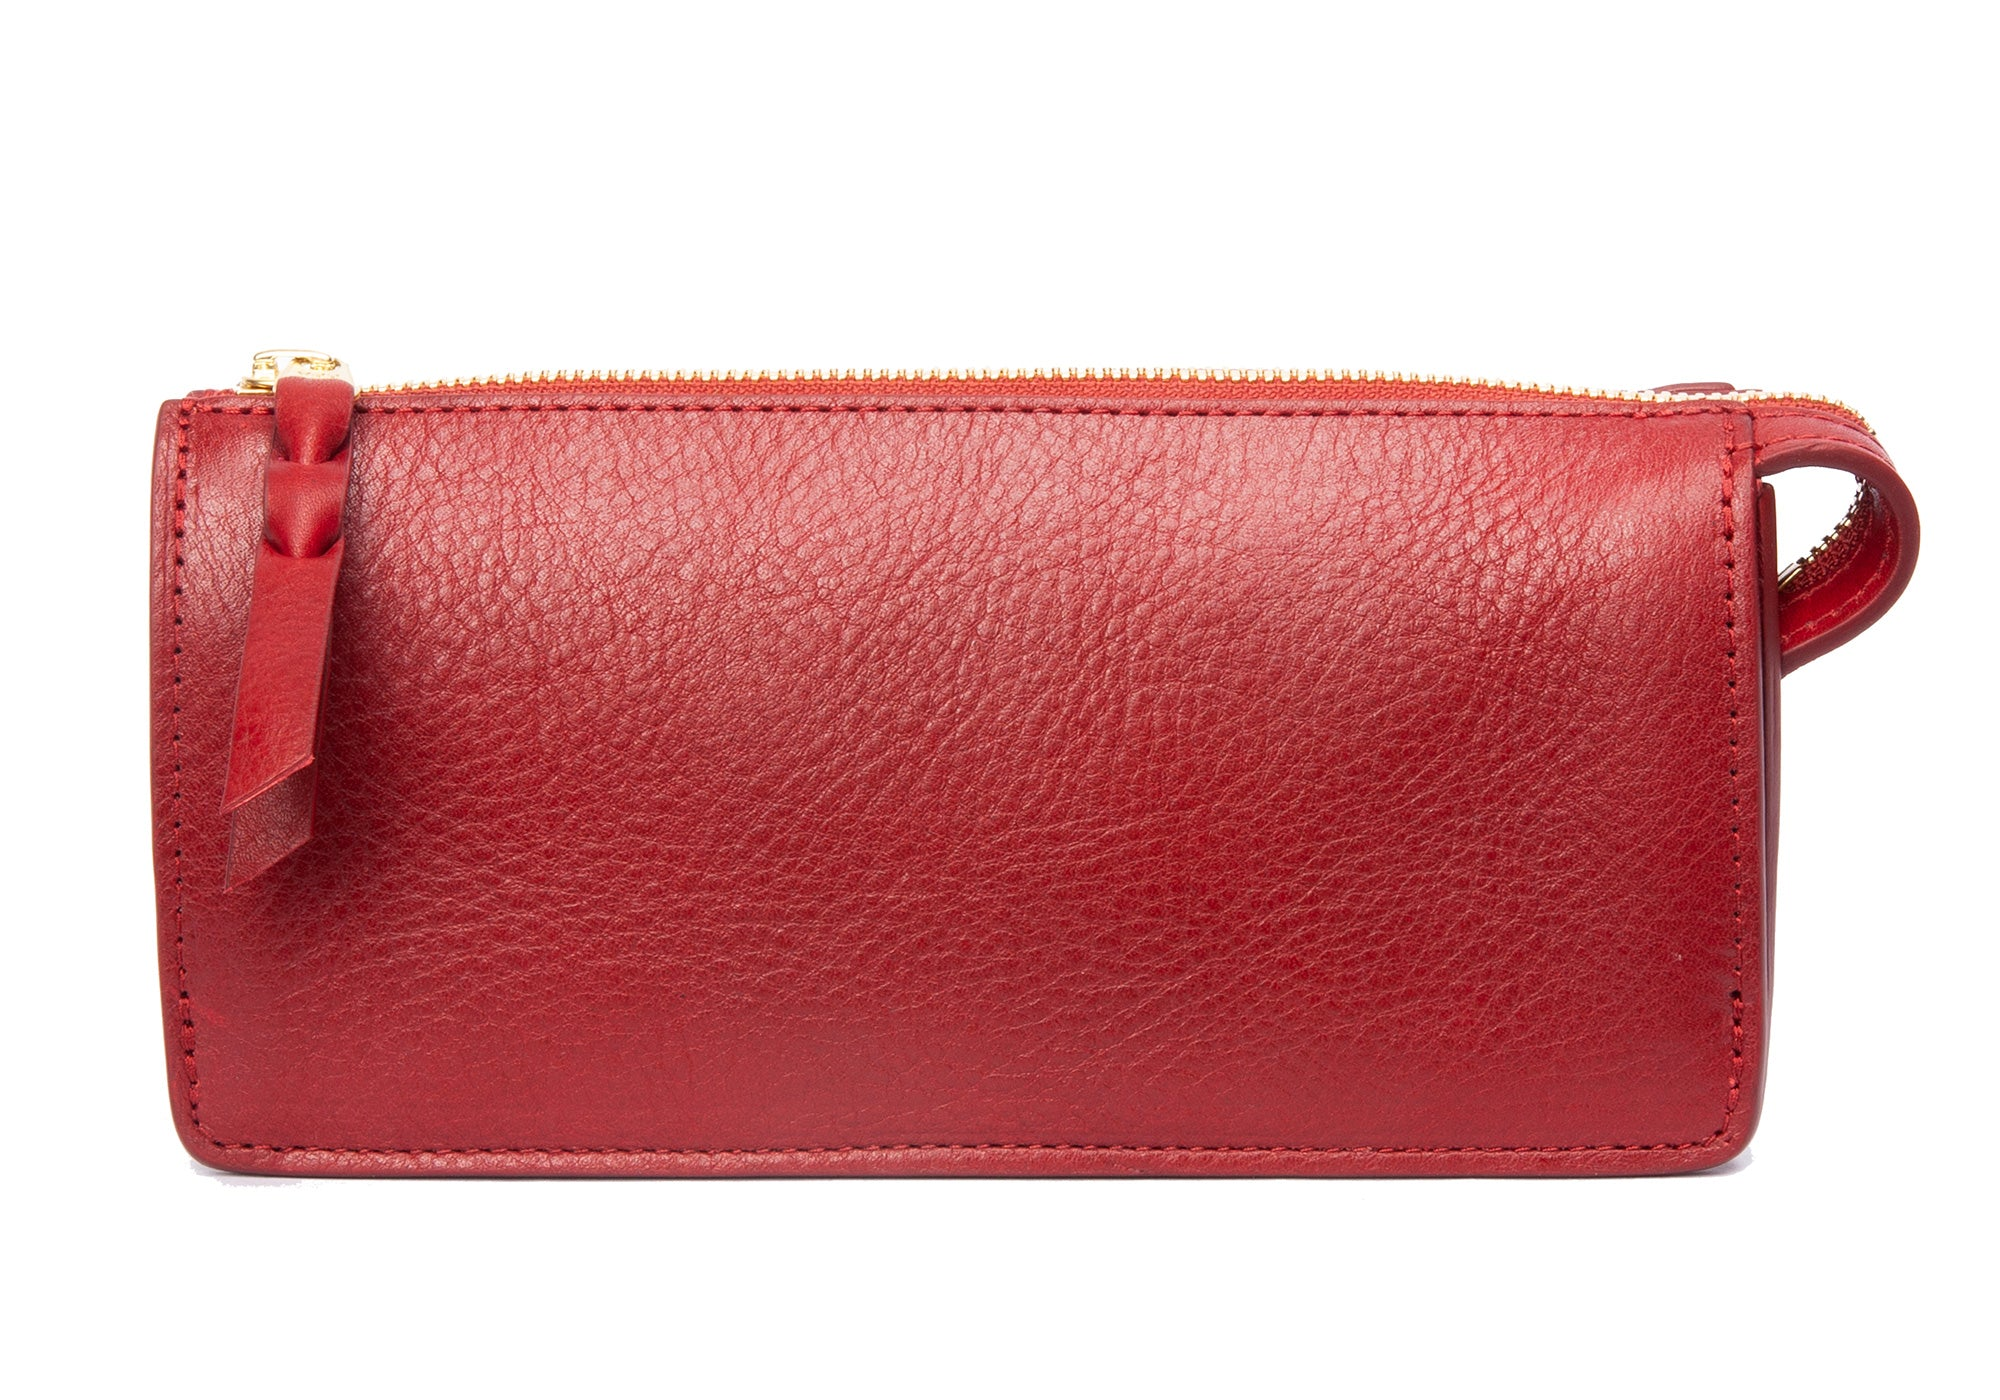 Women's Leather Wallet Red